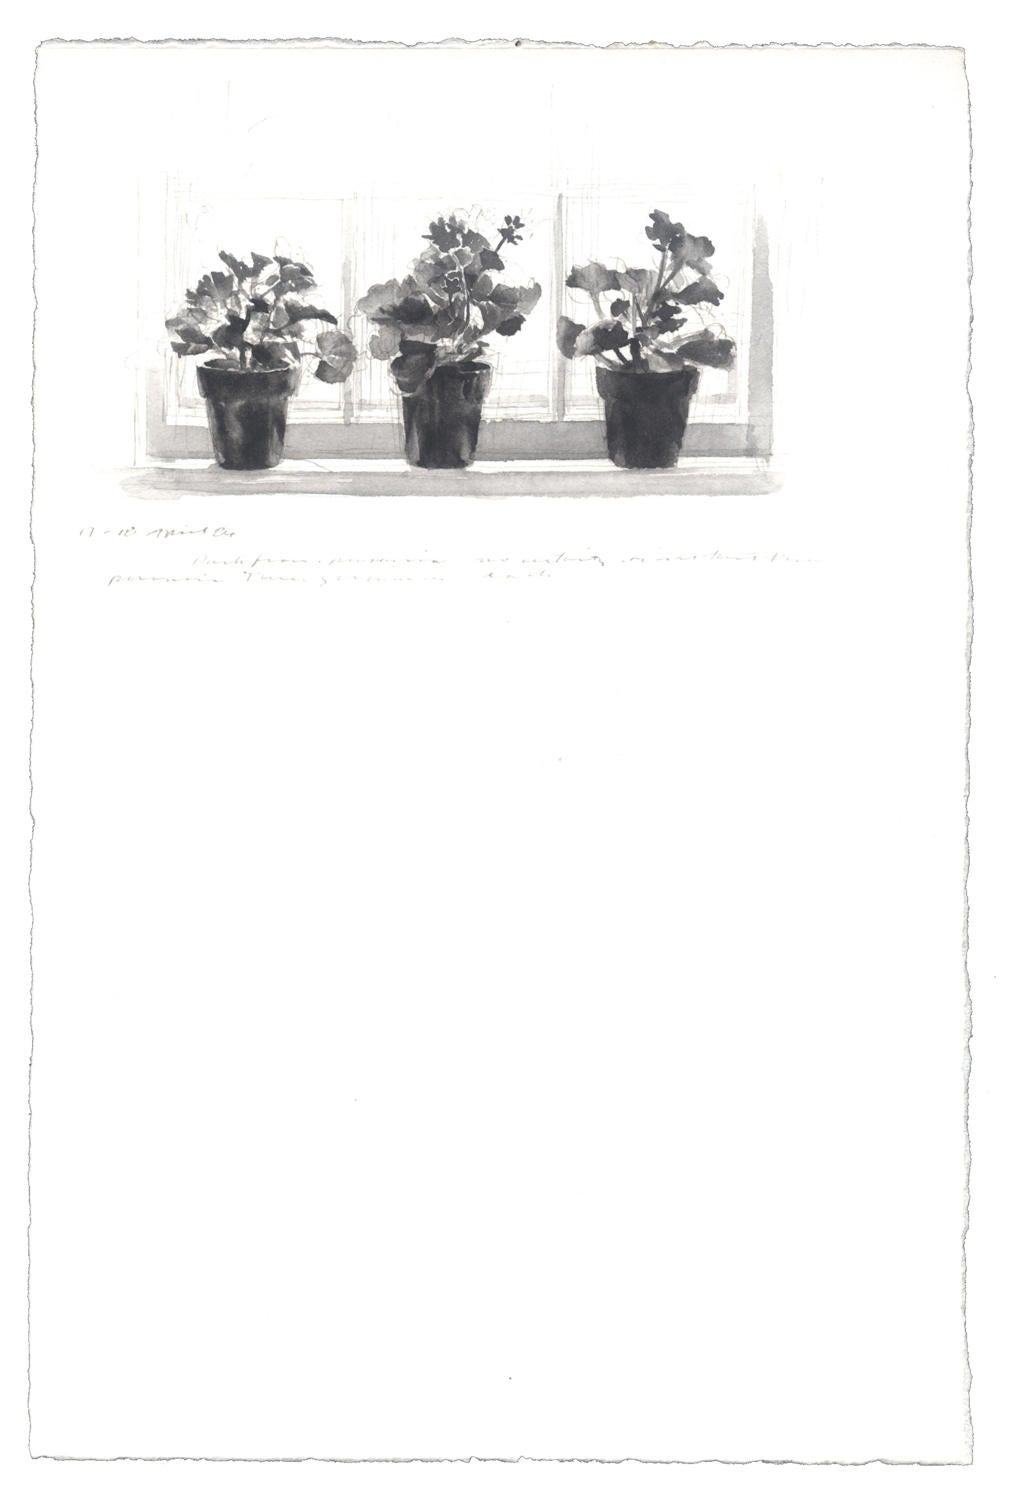 Three Geraniums: 17-18 April 1986 image